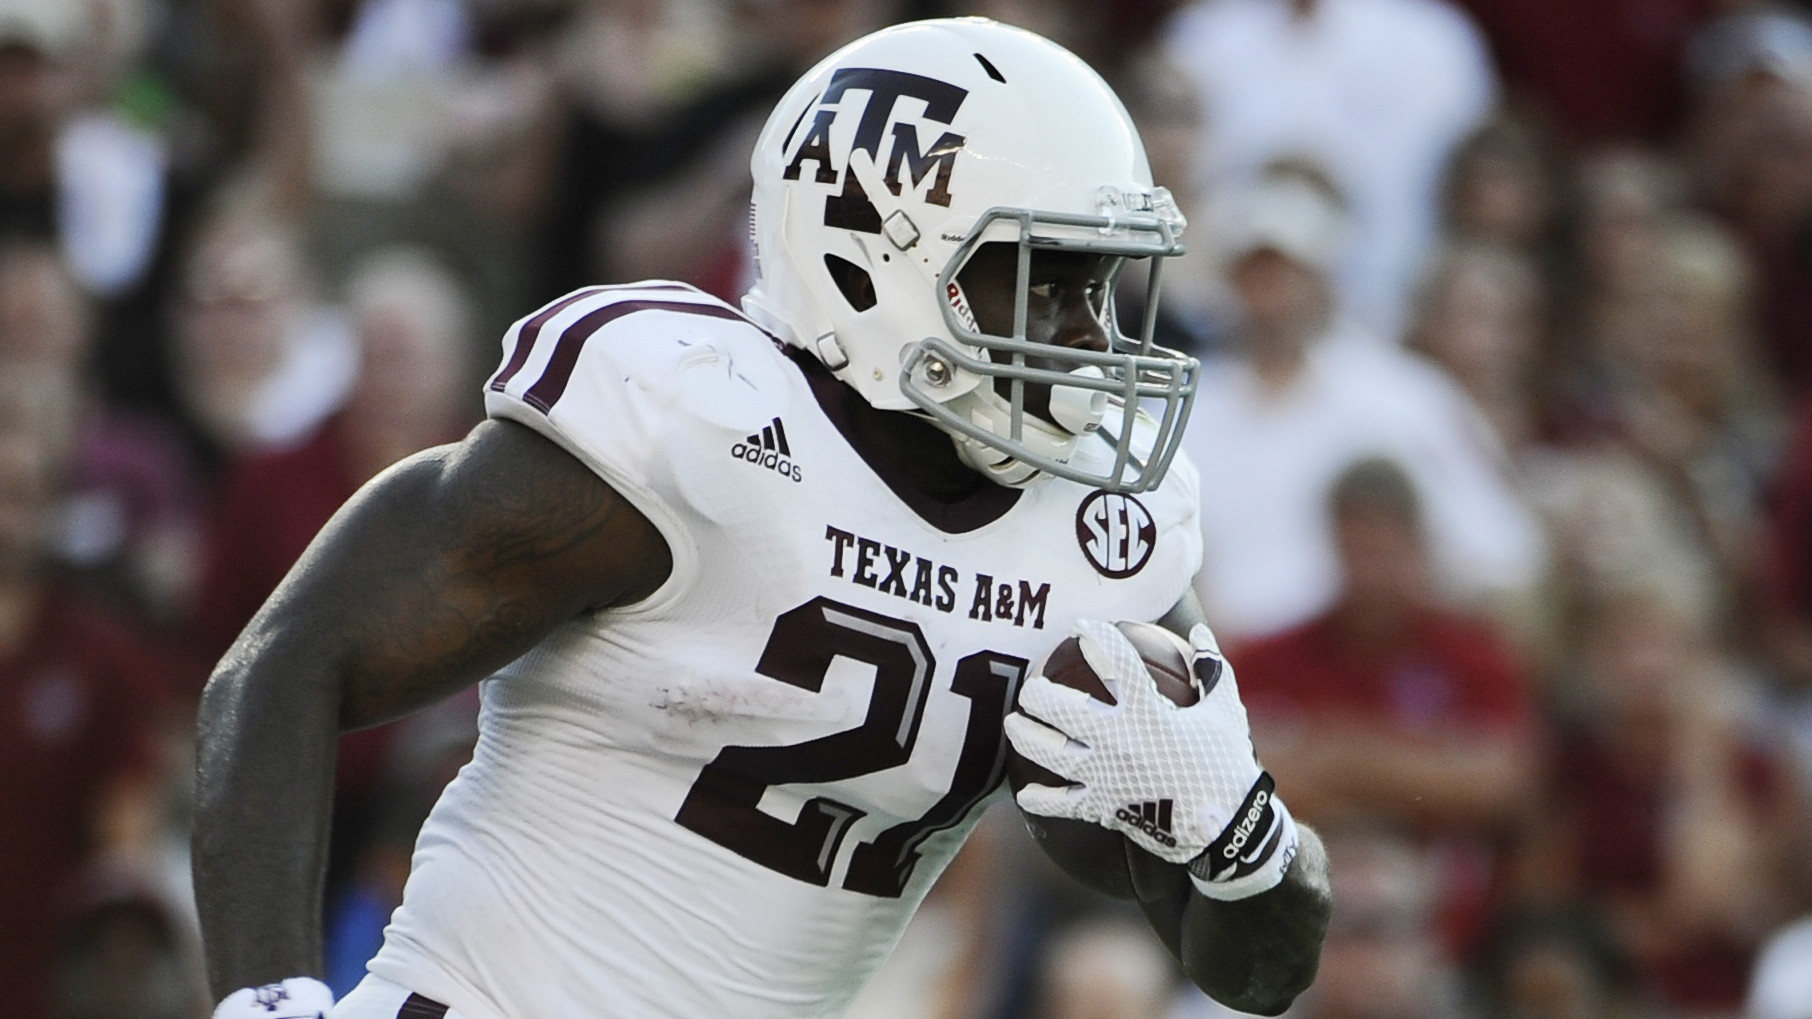 Texas A&M makes big jump to No. 9 in Associated Press Top 25 poll